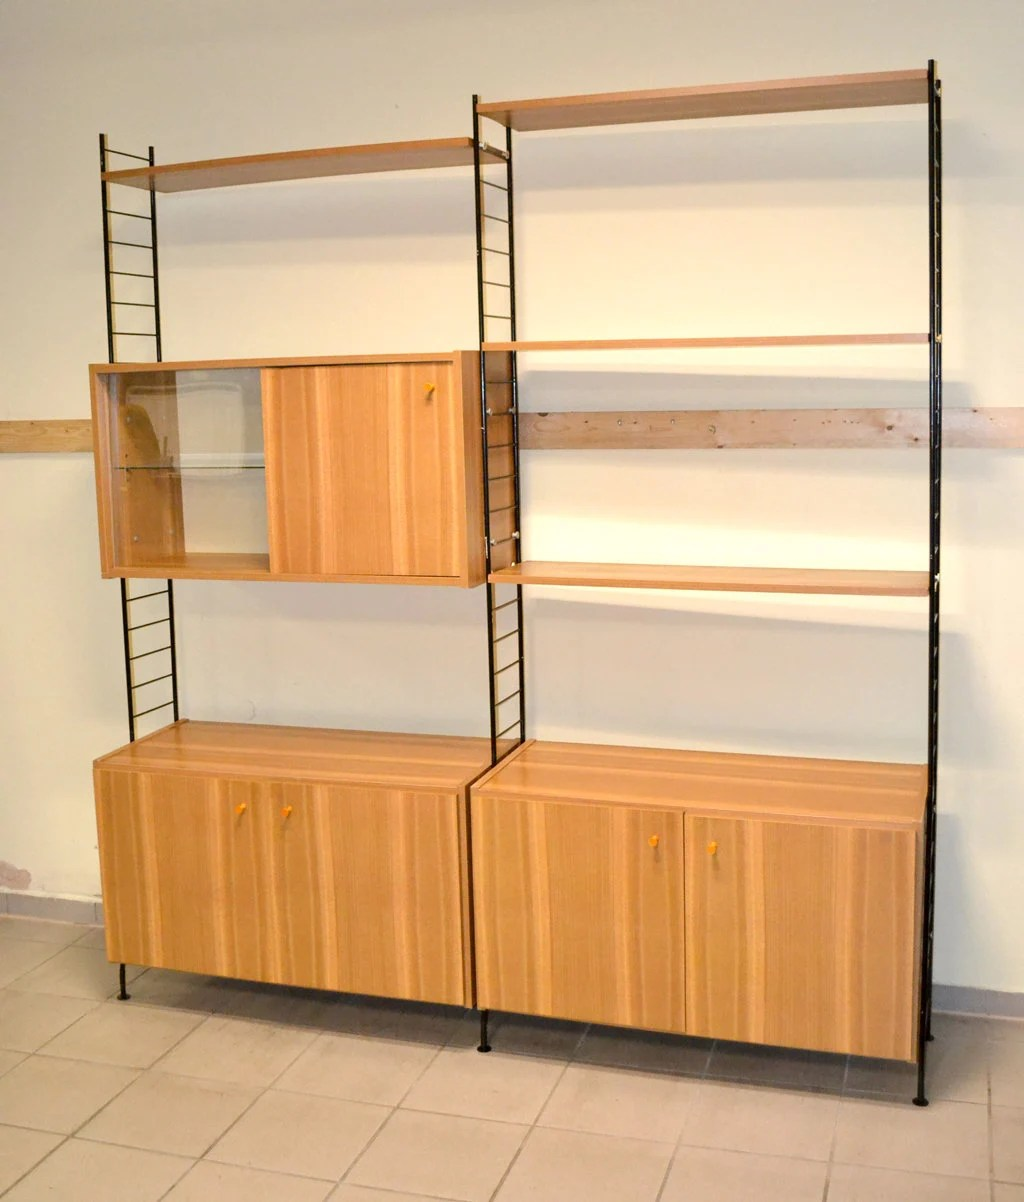 String Regal Ddr Oem Shelving System Sybille 70s Ddr Shelving Cabinet Design Vintage Furniture Shelf Closet Secretary Mid Century String Whb 1970 Shabby 60s